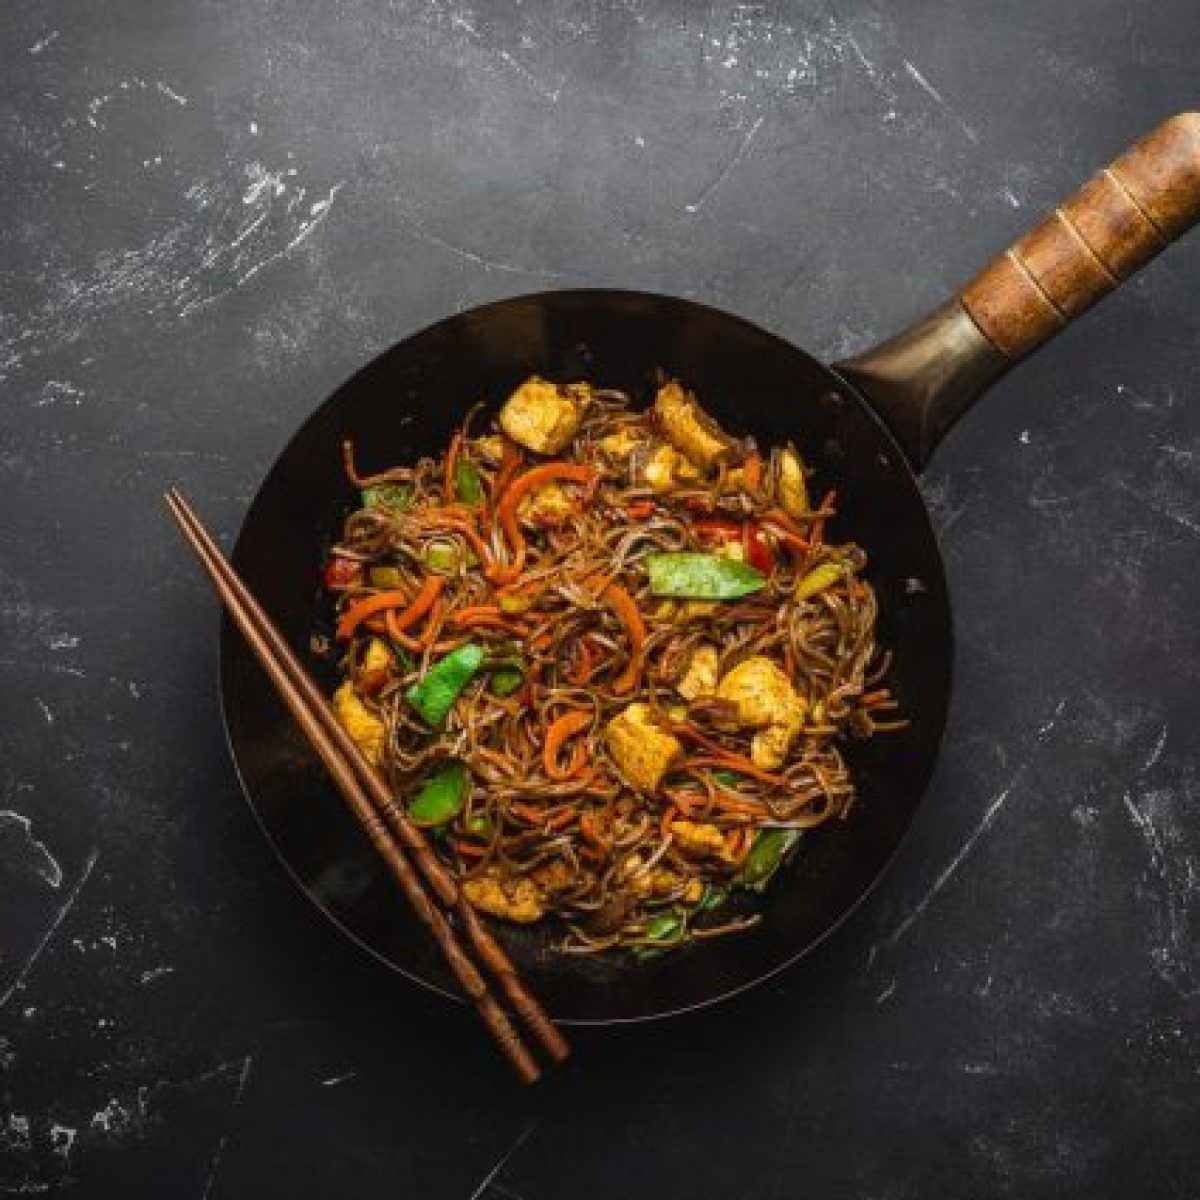 How To Use The Wok The Secrets Of The Chinese Saucepan And 5 Recipes To Try